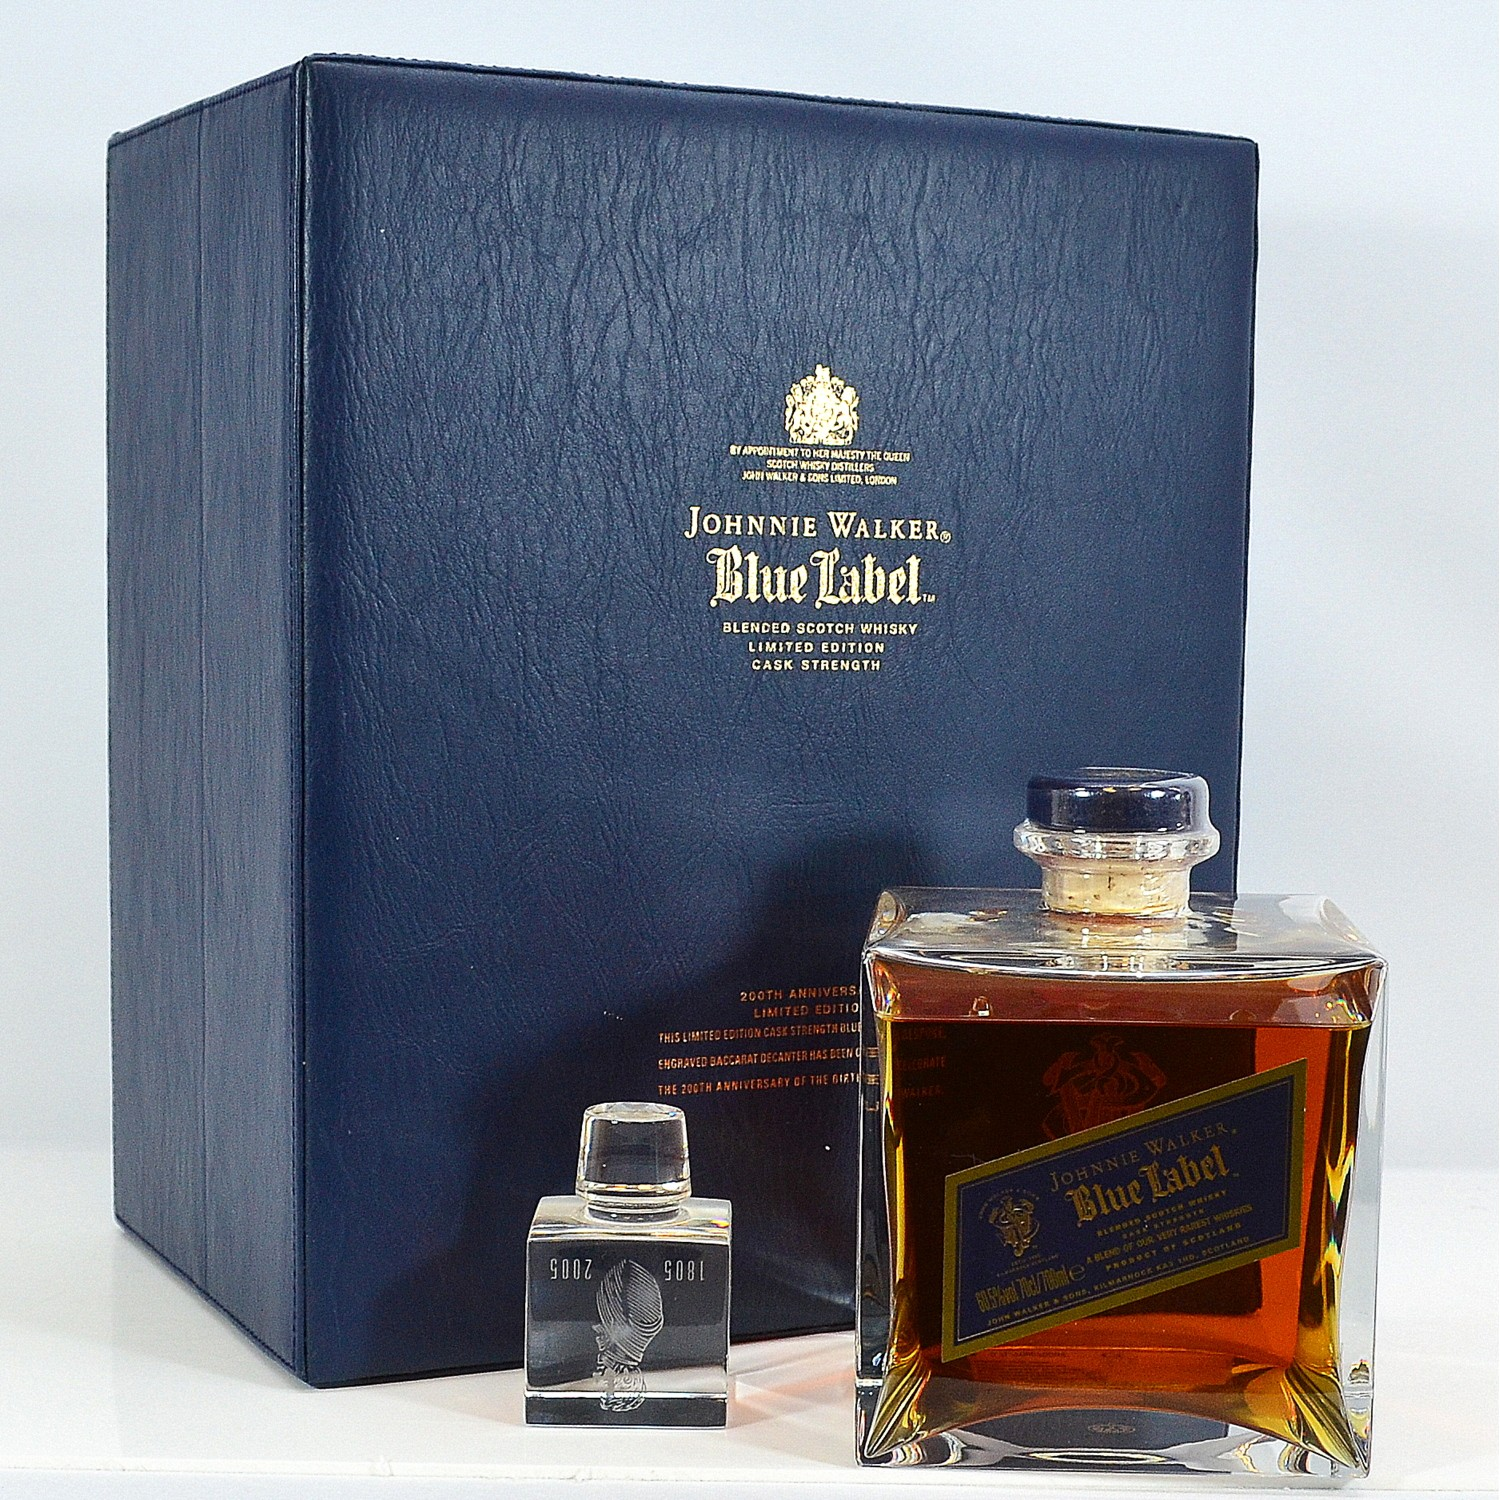 It's just an image of Playful Johnnie Walker Blue Label Case